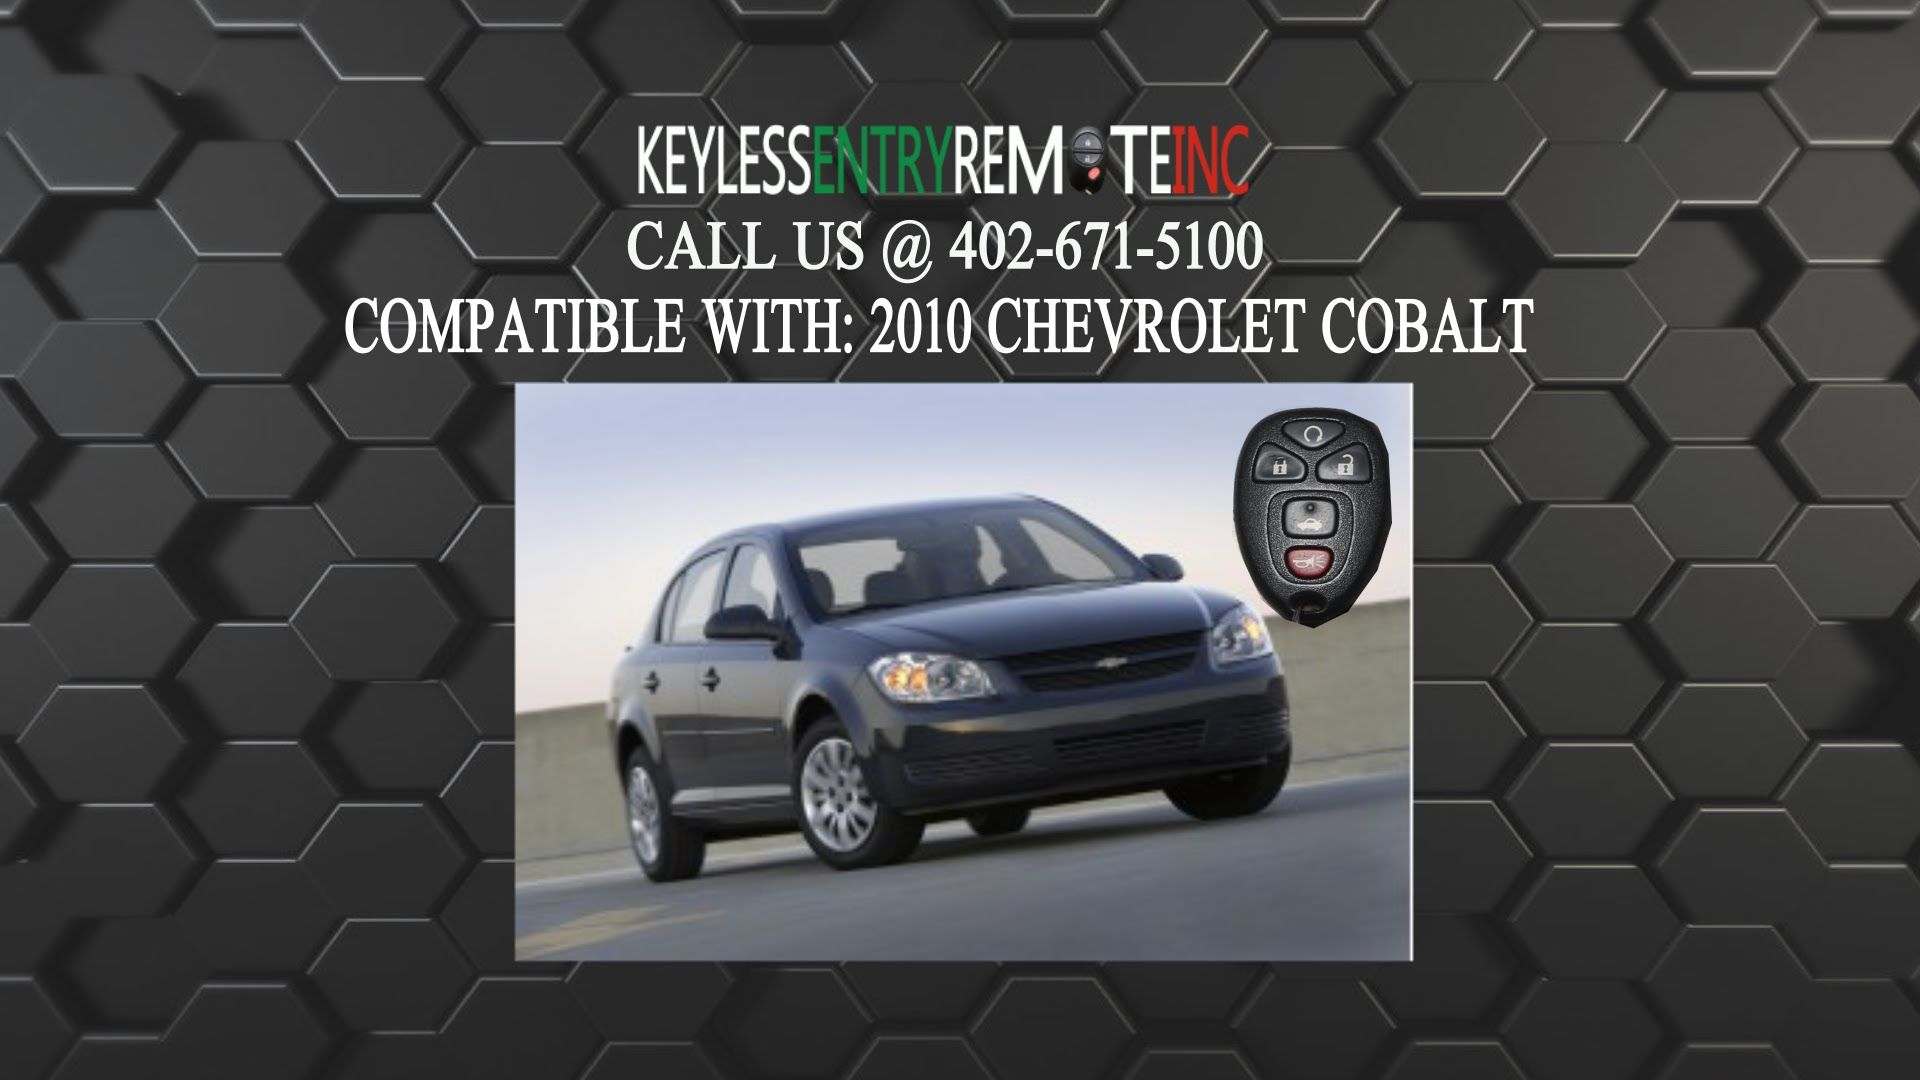 How To Replace A Chevrolet 2005 2010 Cobalt Key Fob Battery